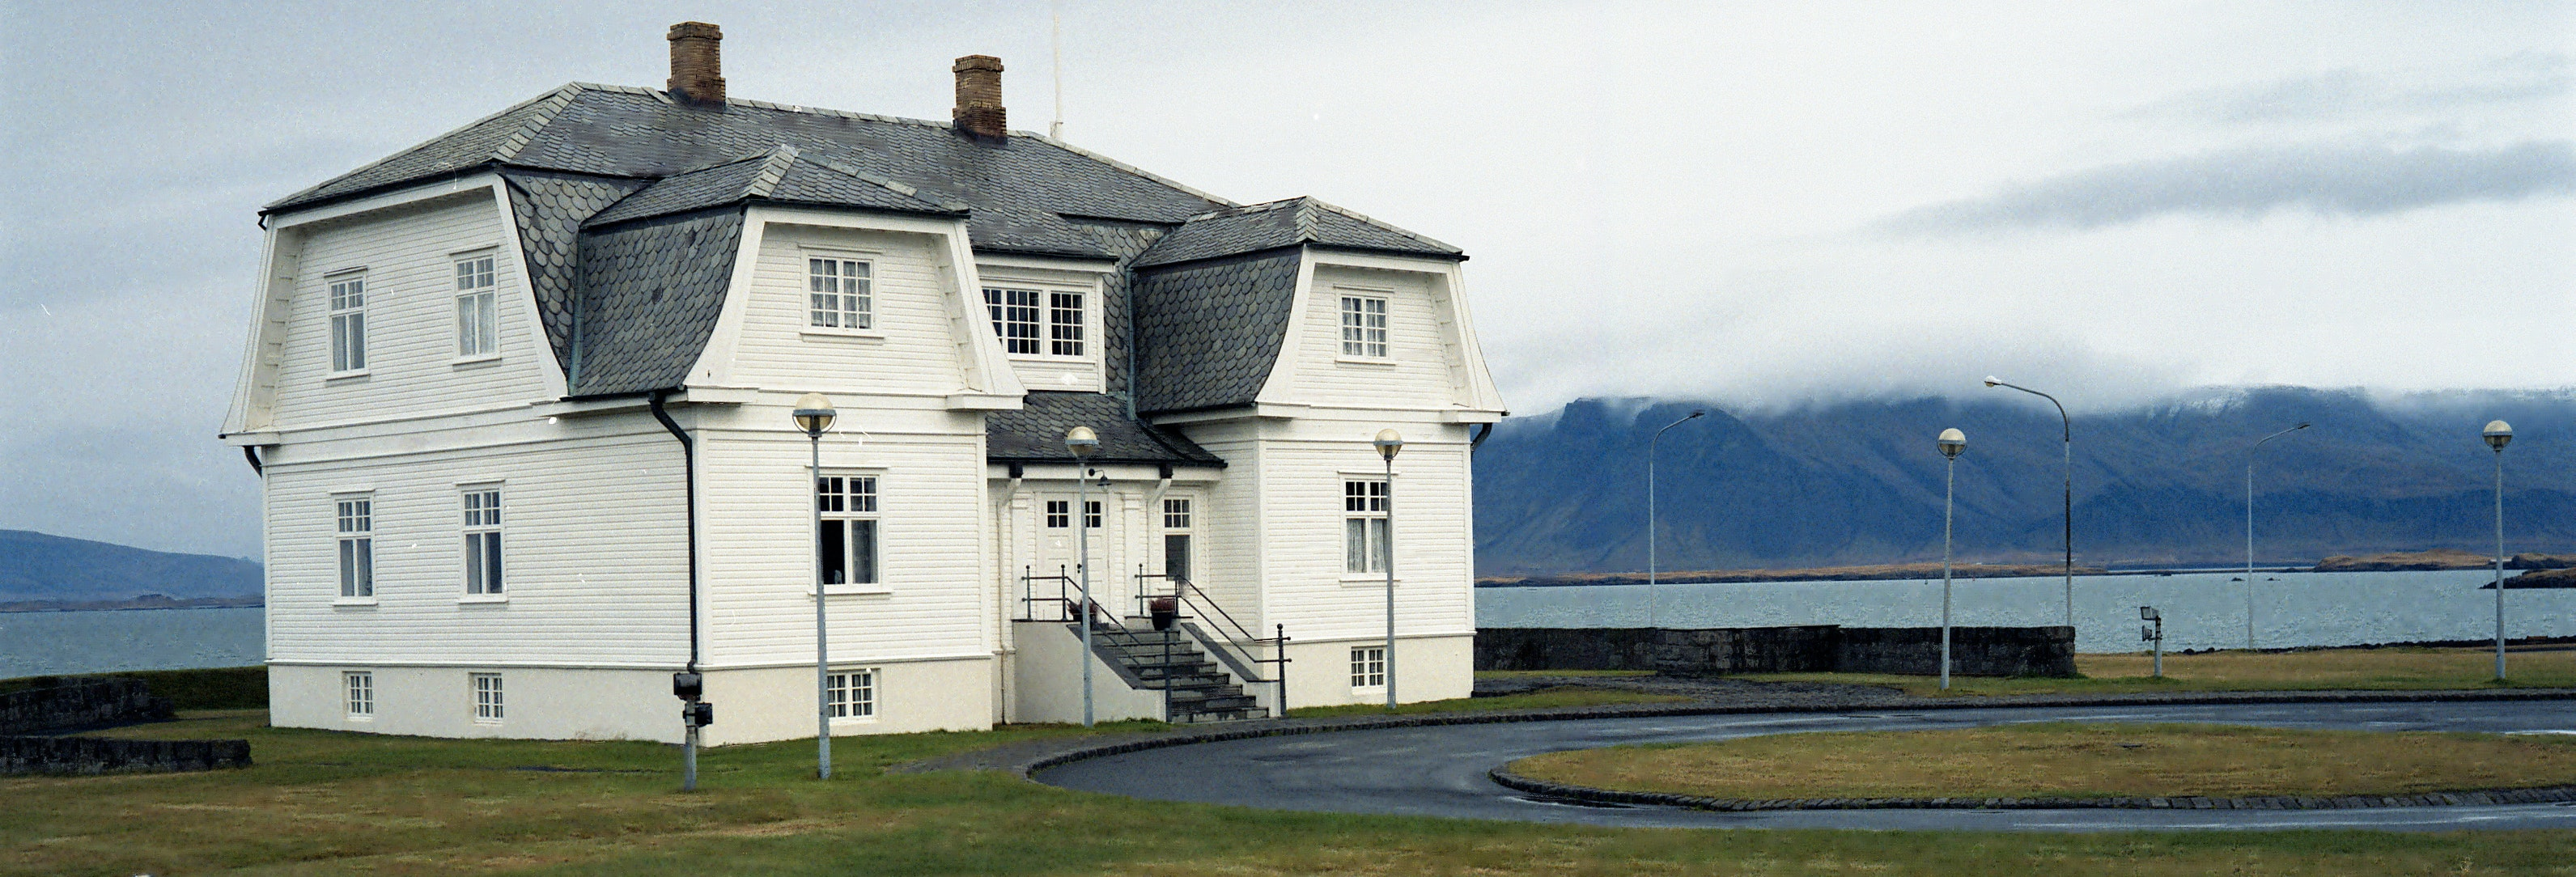 Höfði House is located just ten minutes walk from the main street in Reykjavík, and is where Reagan and Gorbachev met to discuss nuclear disarmament.